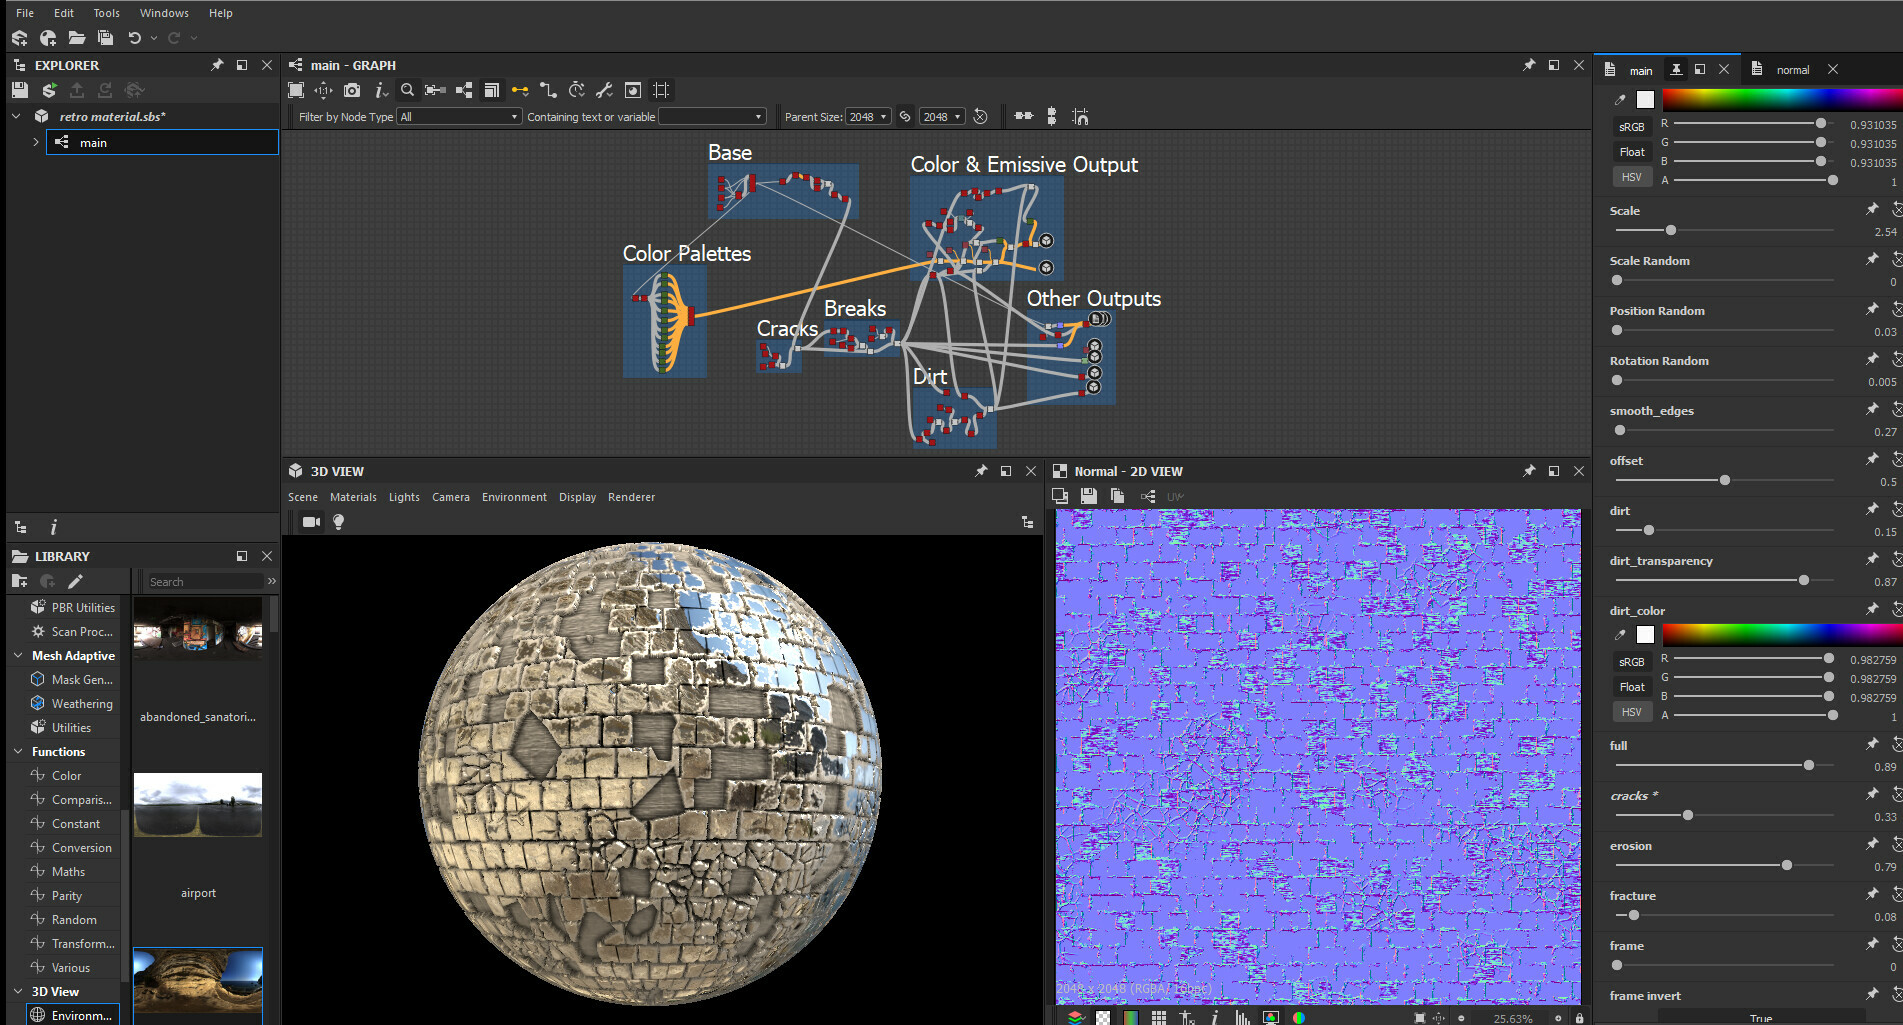 Btw, I made the Disco Material for retro texturing purposes with Substance Designer: